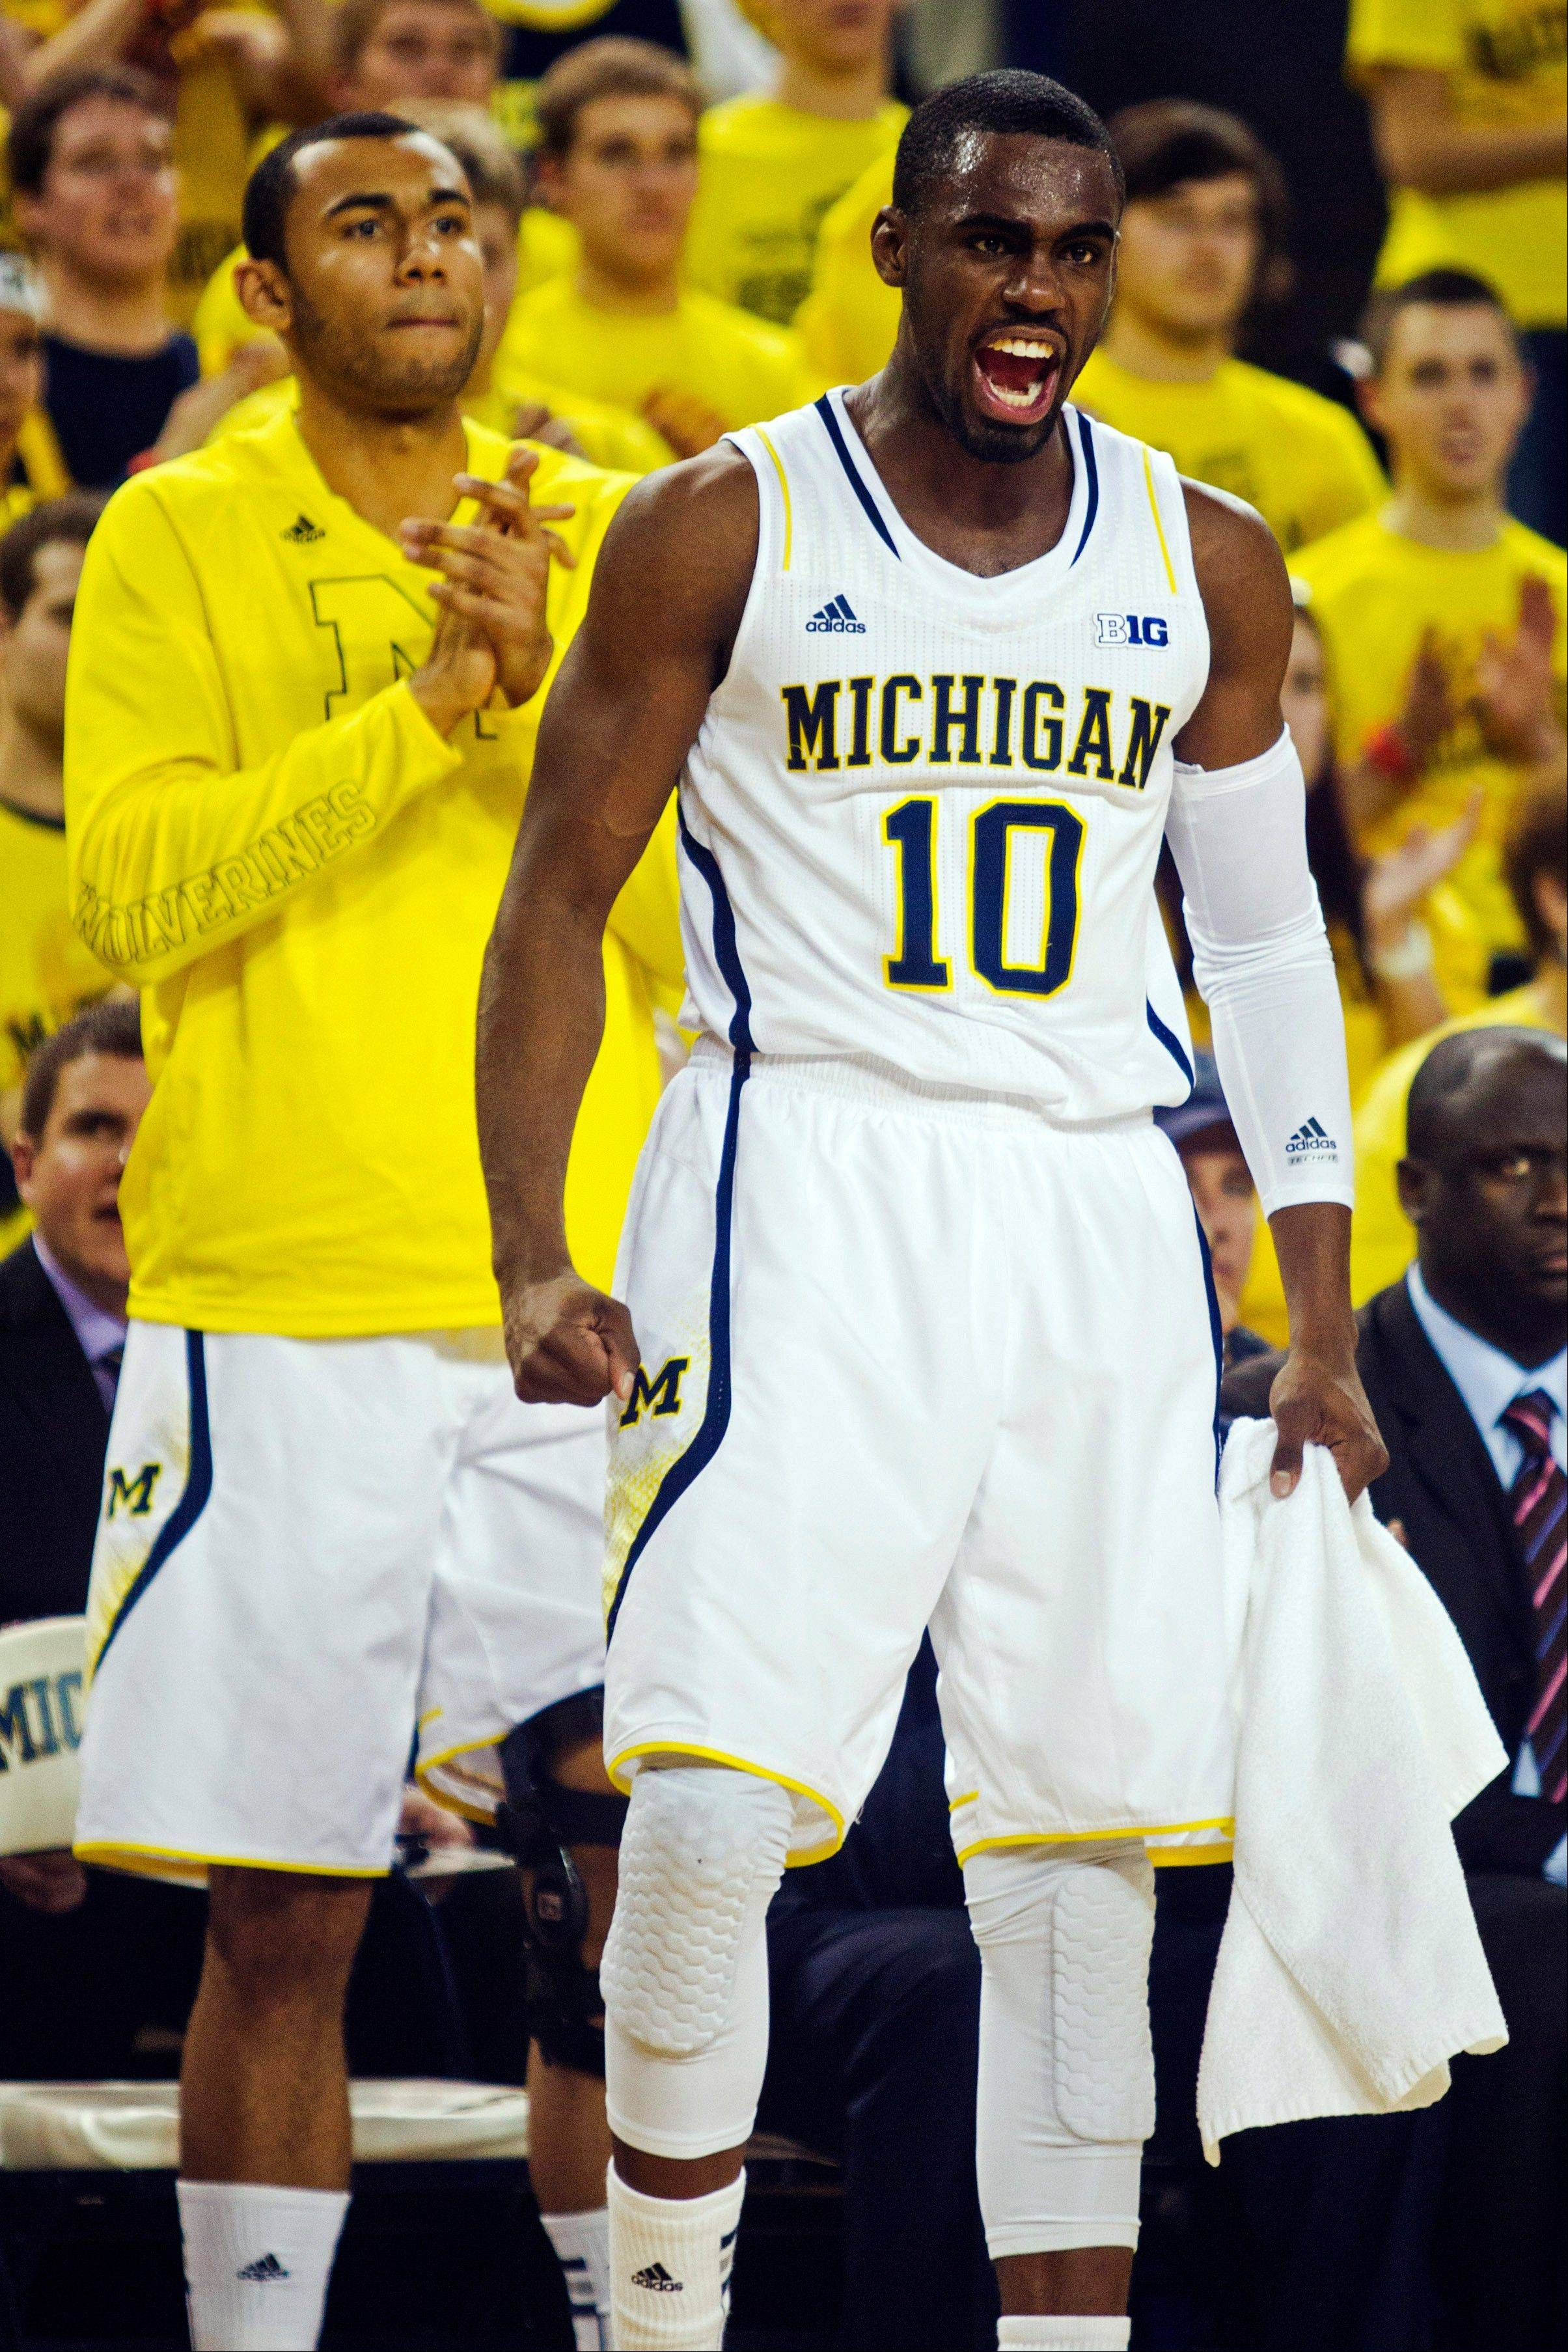 Michigan guard Tim Hardaway Jr., (10) celebrates alongside forward Jon Horford in the first half of an NCAA college basketball game against Nebraska on Wednesday at Crisler Center in Ann Arbor, Mich. Michigan won 62-47.